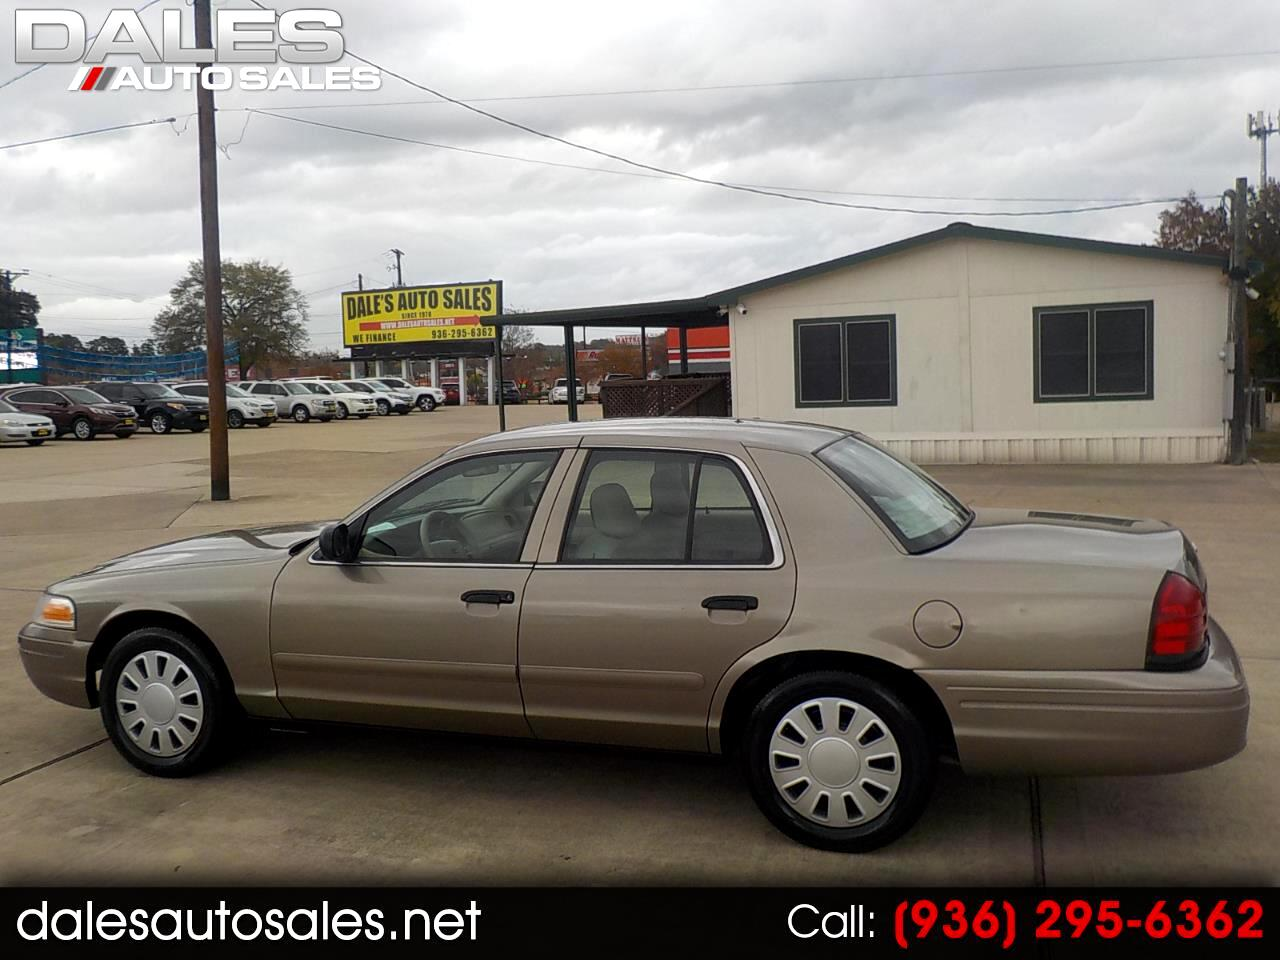 Ford Crown Victoria 4dr Sedan LX 2008